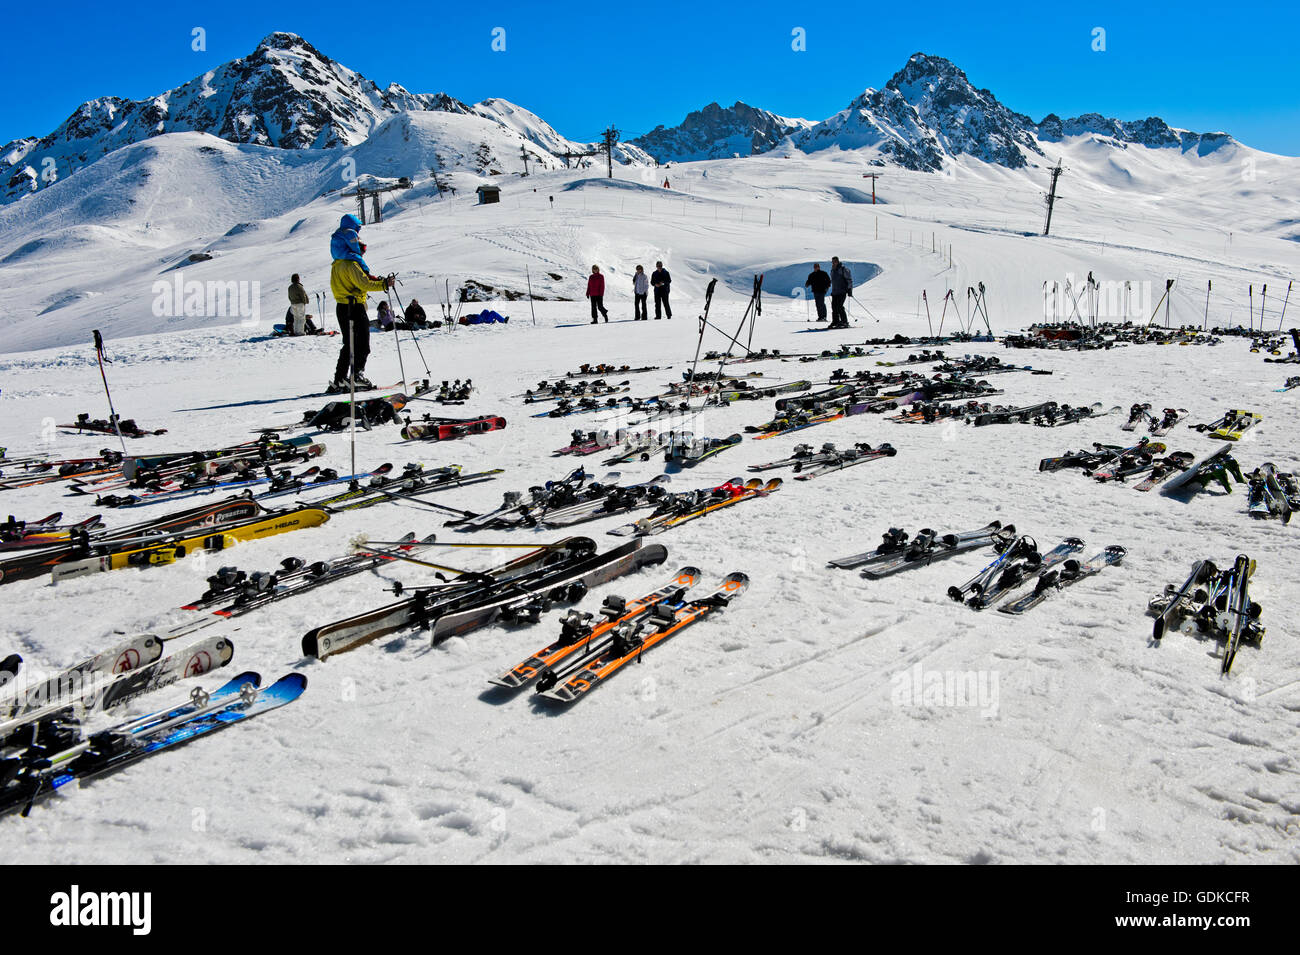 Pairs of skis lying on snow, Col du Joly, Les Contamines-Montjoie ski resort, Haute-Savoie, France - Stock Image